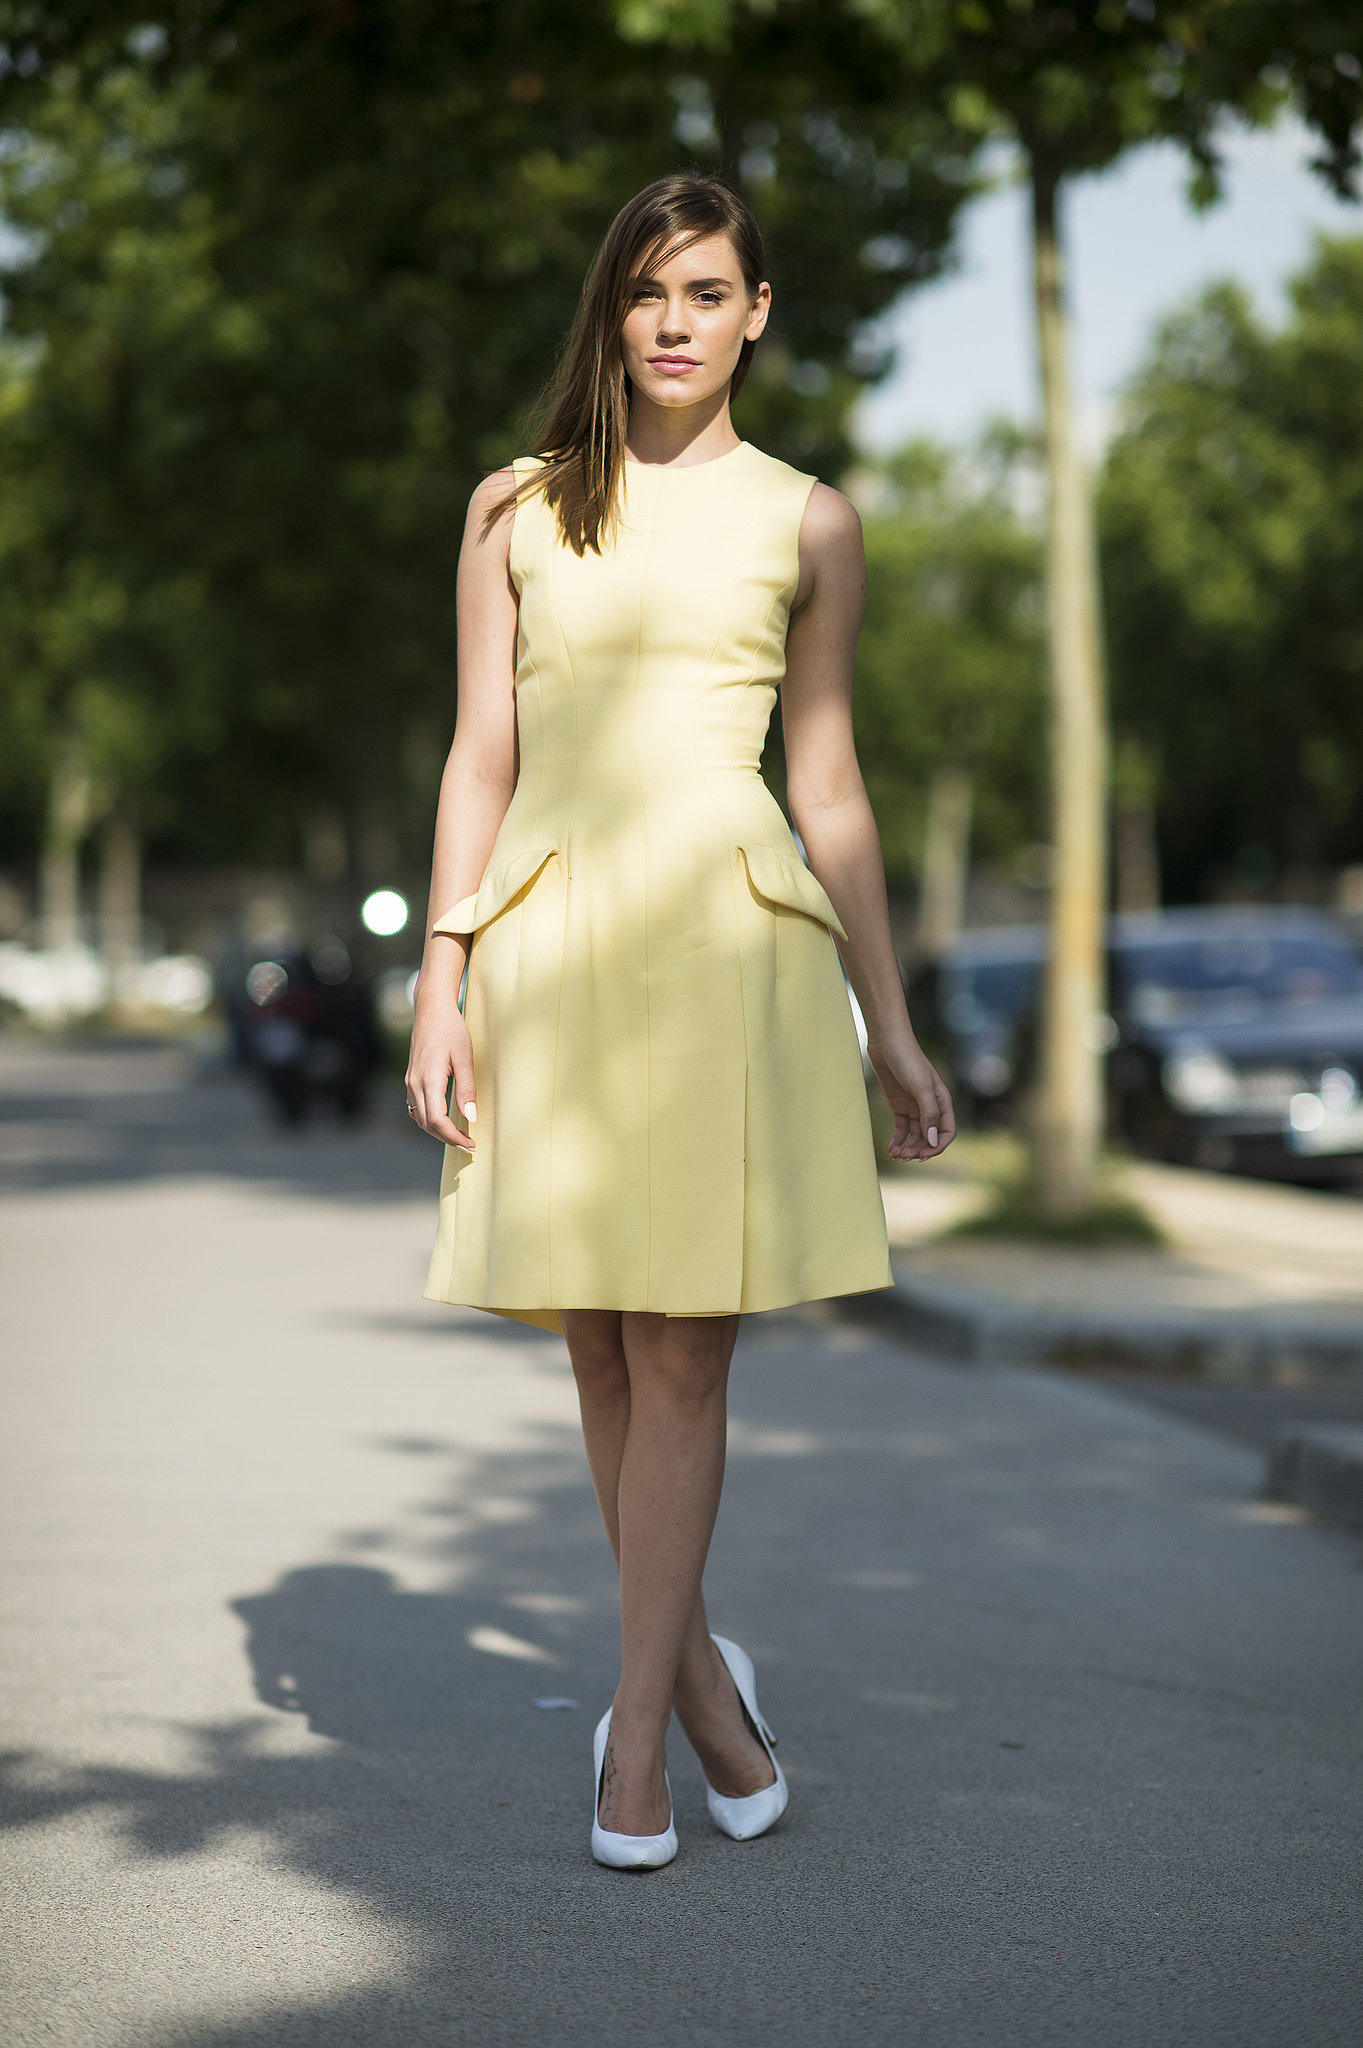 A ladylike look, from the sweet yellow sheath right down to her polished white pumps. Source: Le 21ème | Adam Katz Sinding